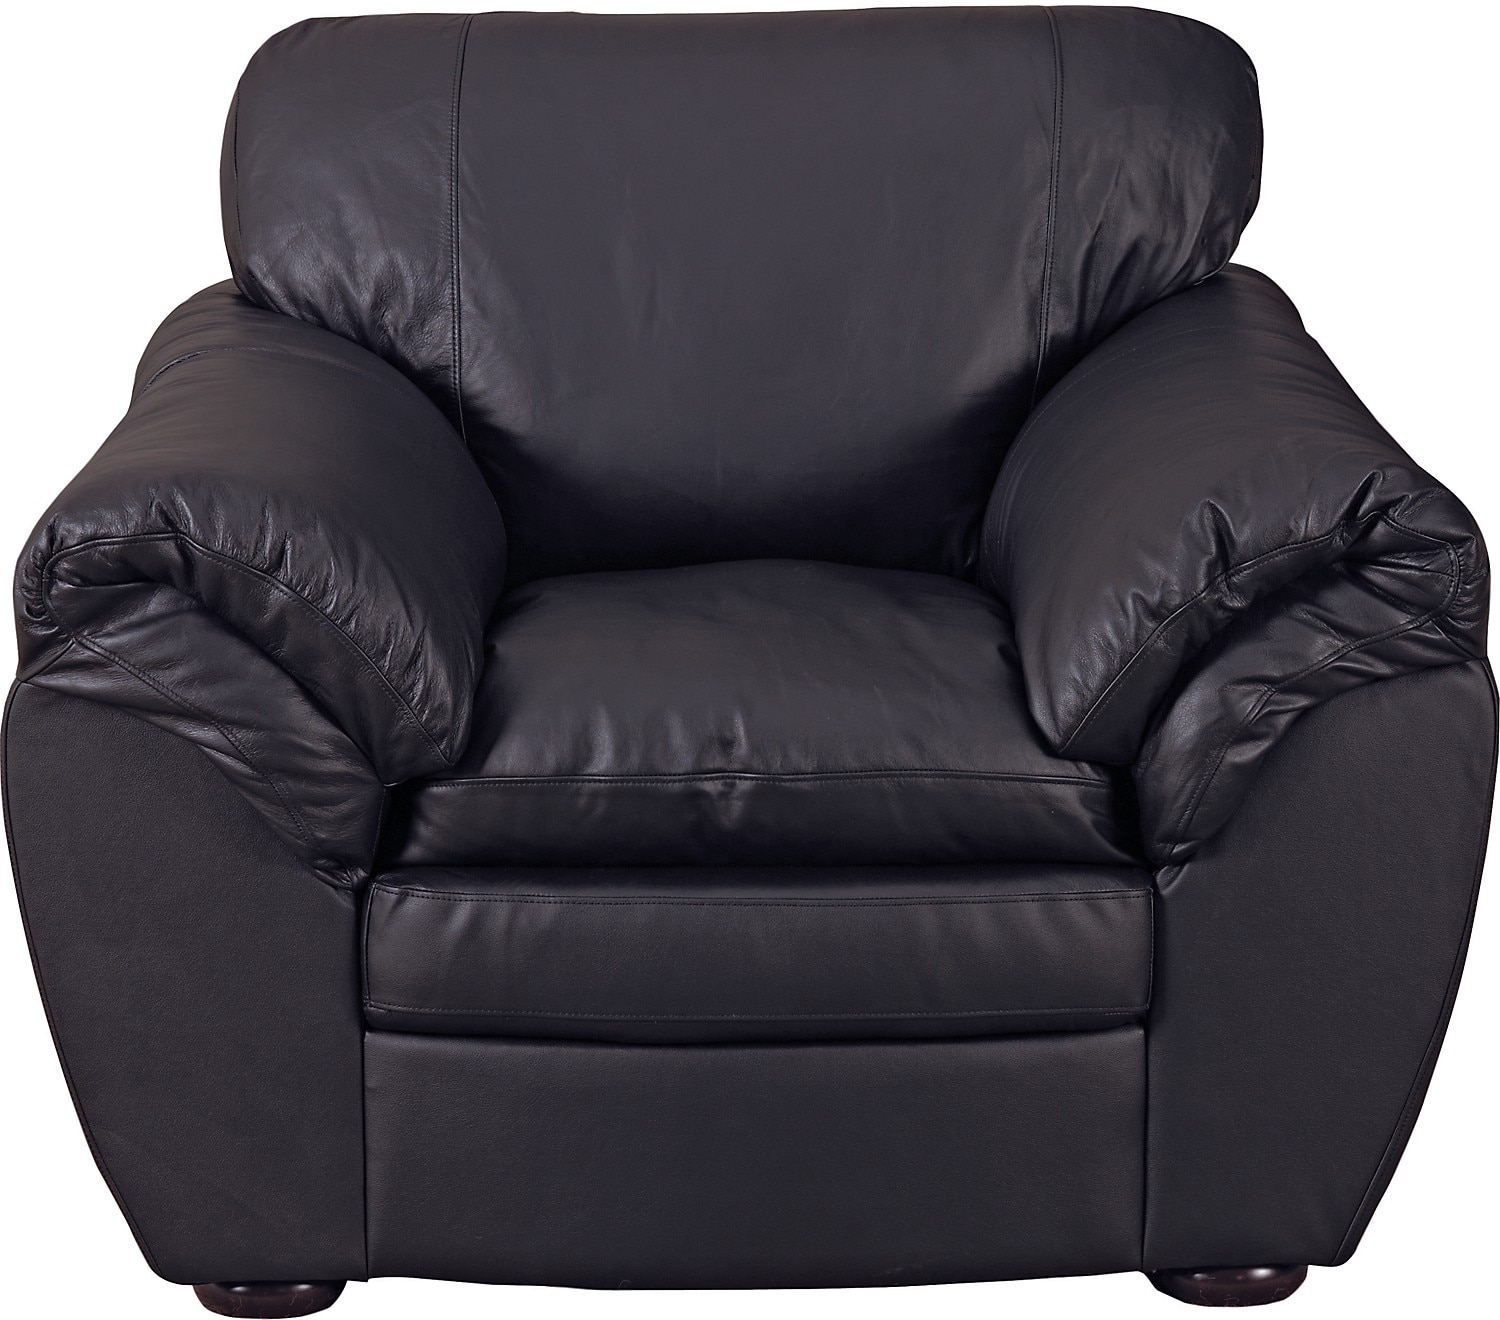 Living Room Furniture - Black 100% Genuine Leather Chair